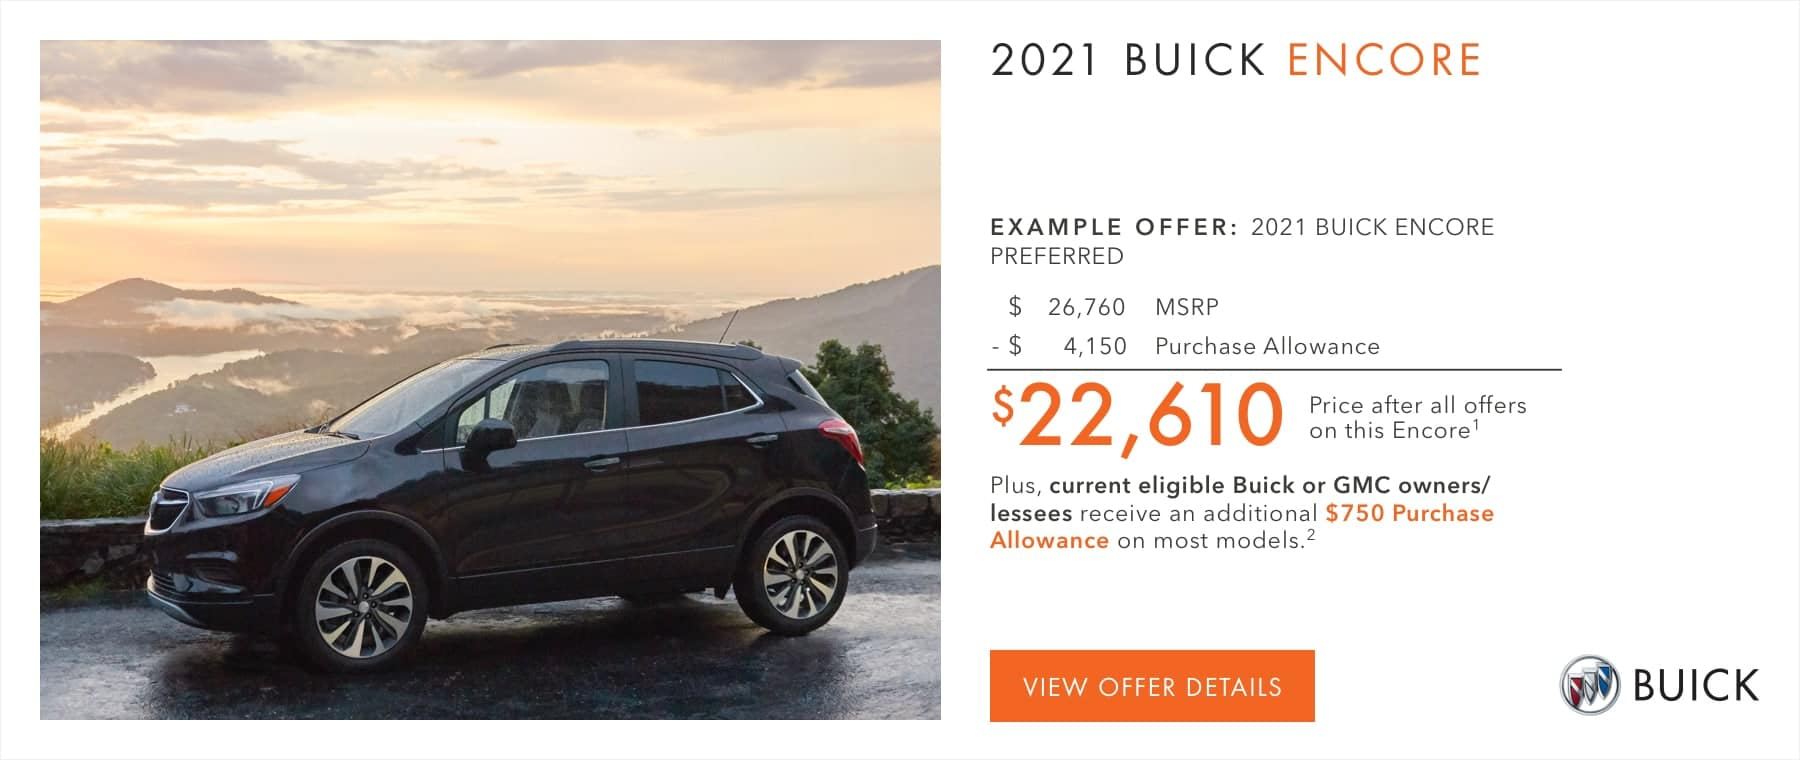 $22,610 Price after all offers on this Encore.1 Plus, current eligible Buick or GMC owners/lessees receive an additional $750 Purchase Allowance on most models.2